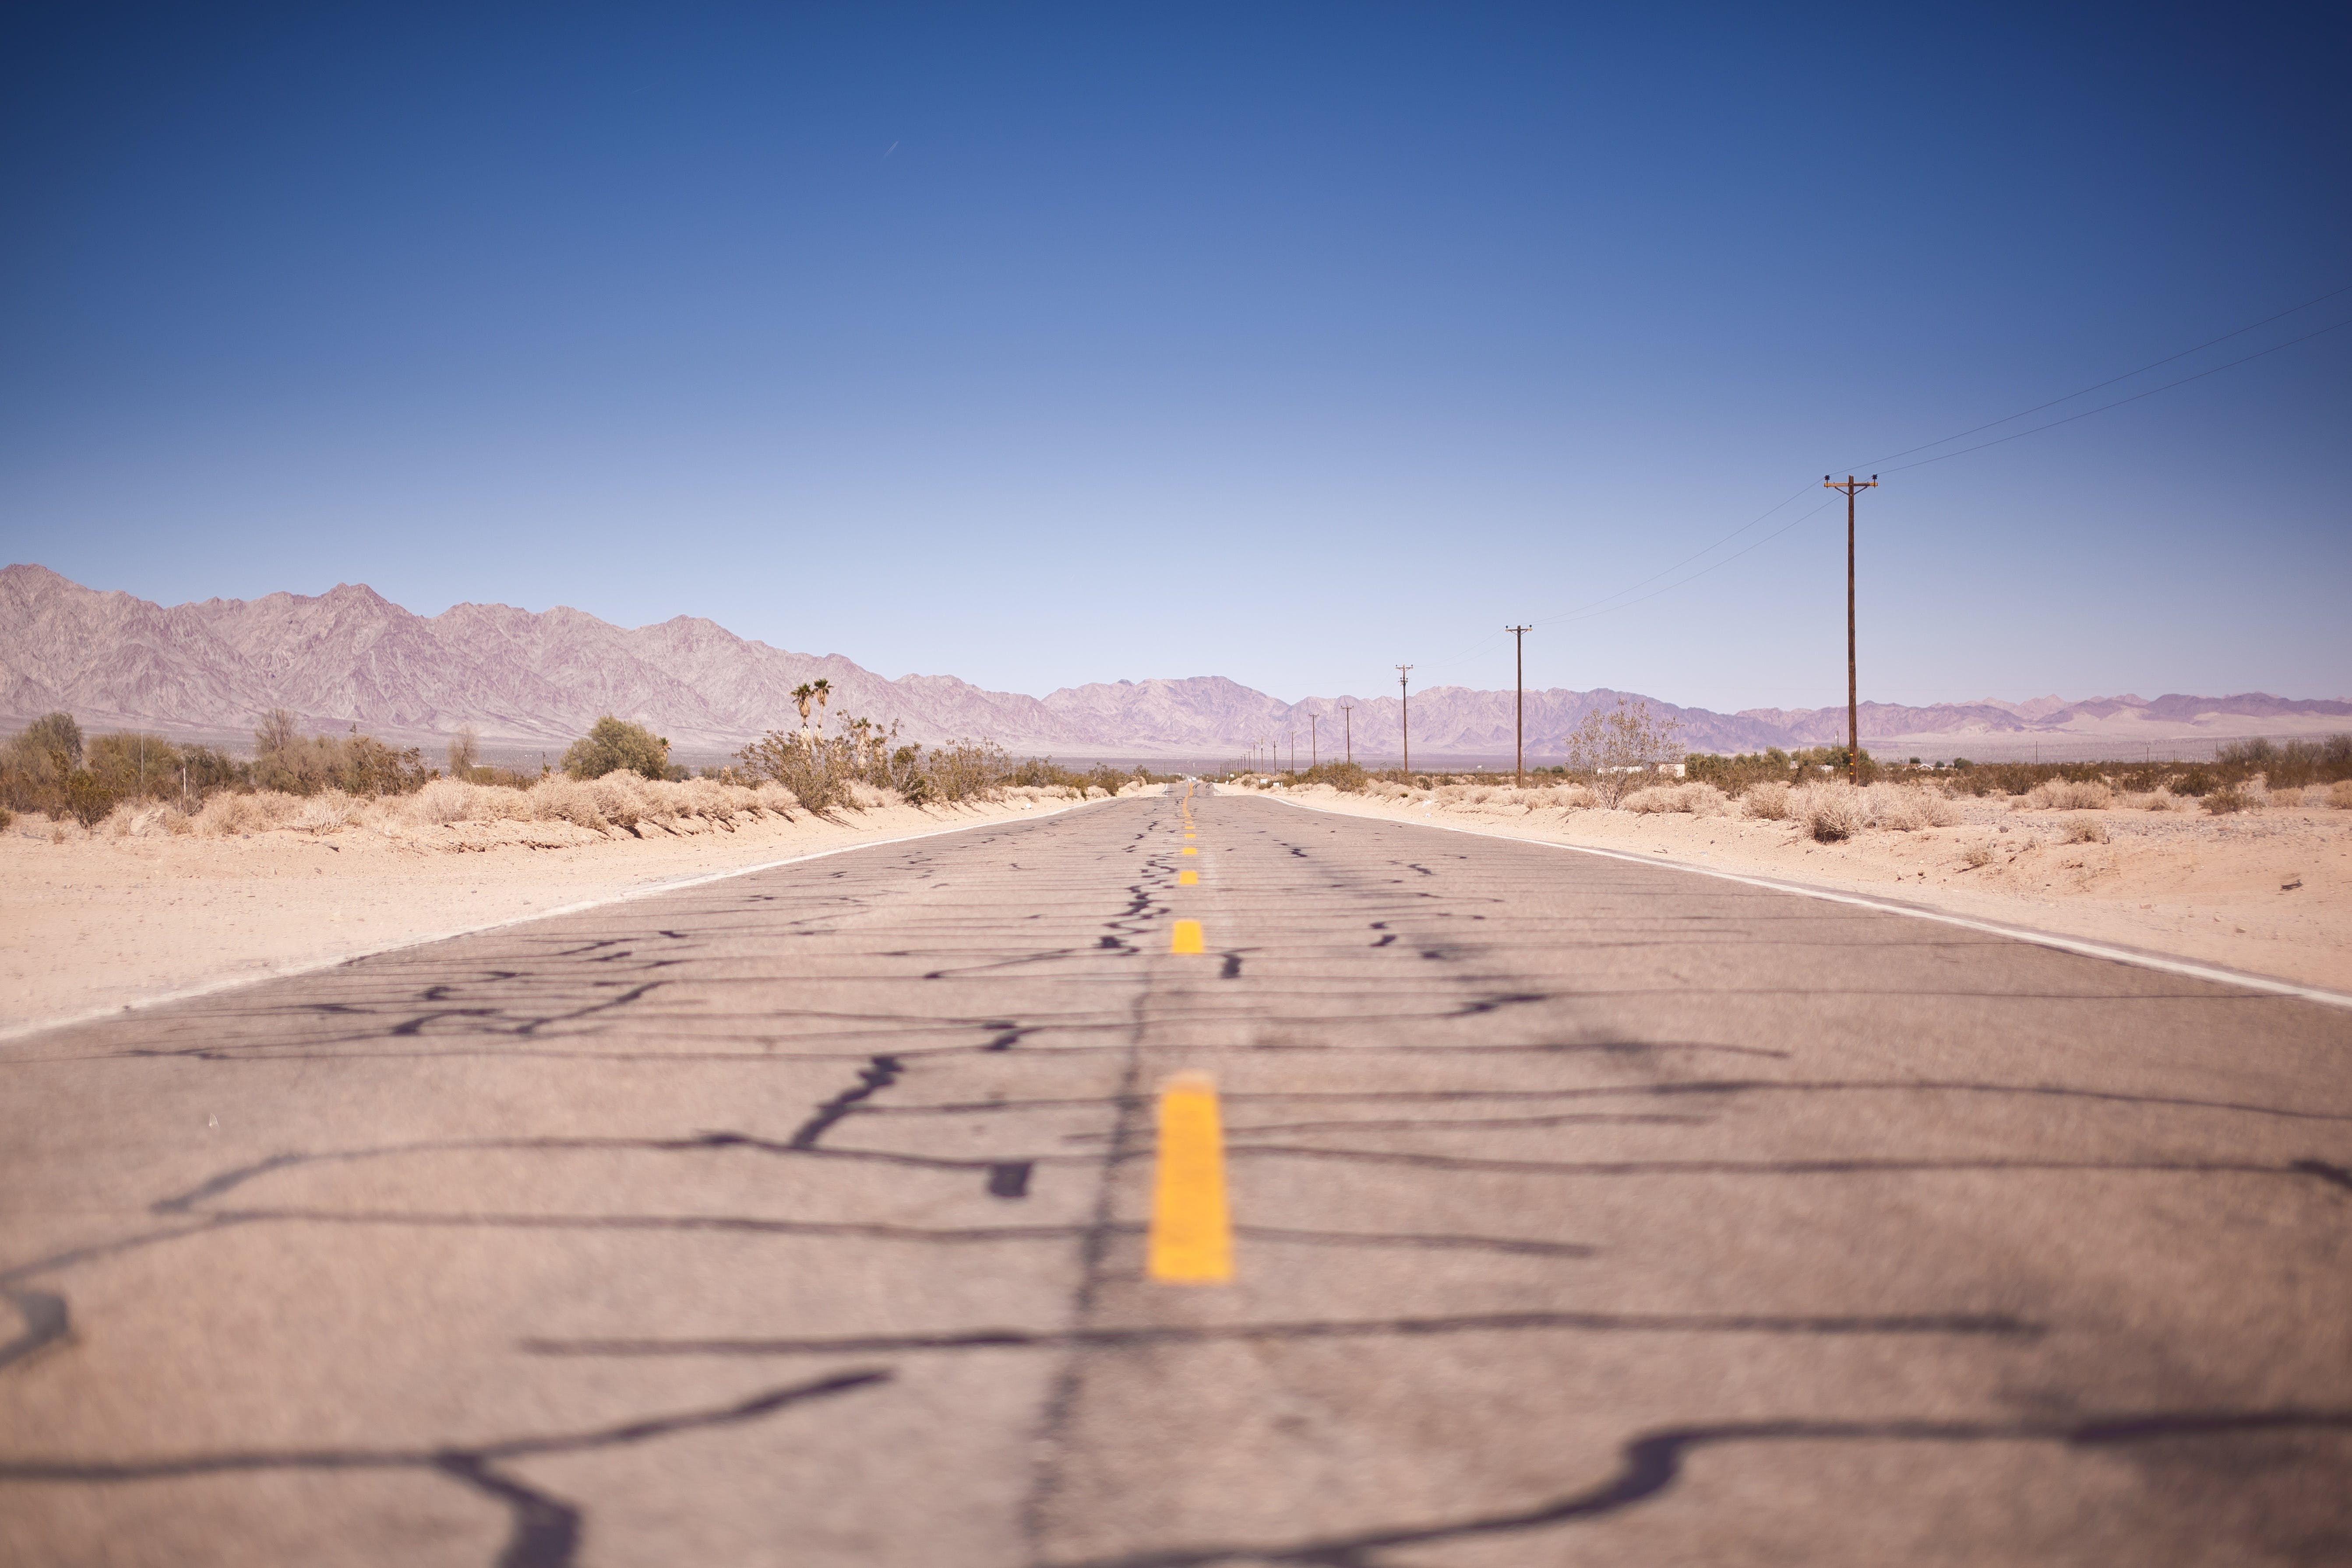 Asphalt Road Under the Clear Blue Skies during Daytime